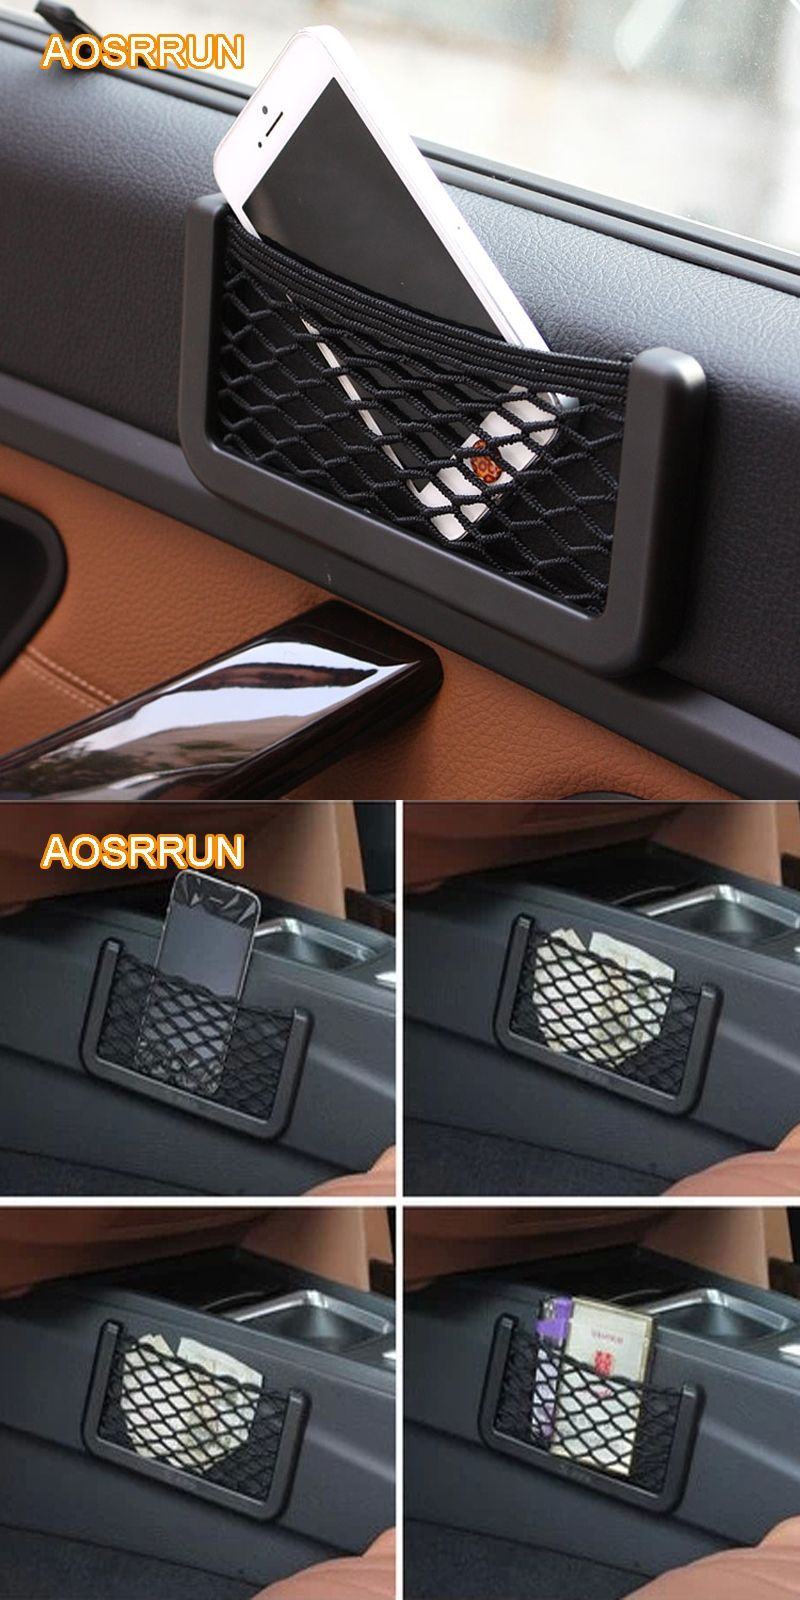 Aosrrun Car Carrying Bag Accessories For Ford Focus 2 3 Kia Ceed Sorento Rio Sportage Chevrolet Cruze Hyundai Solaris Ix35